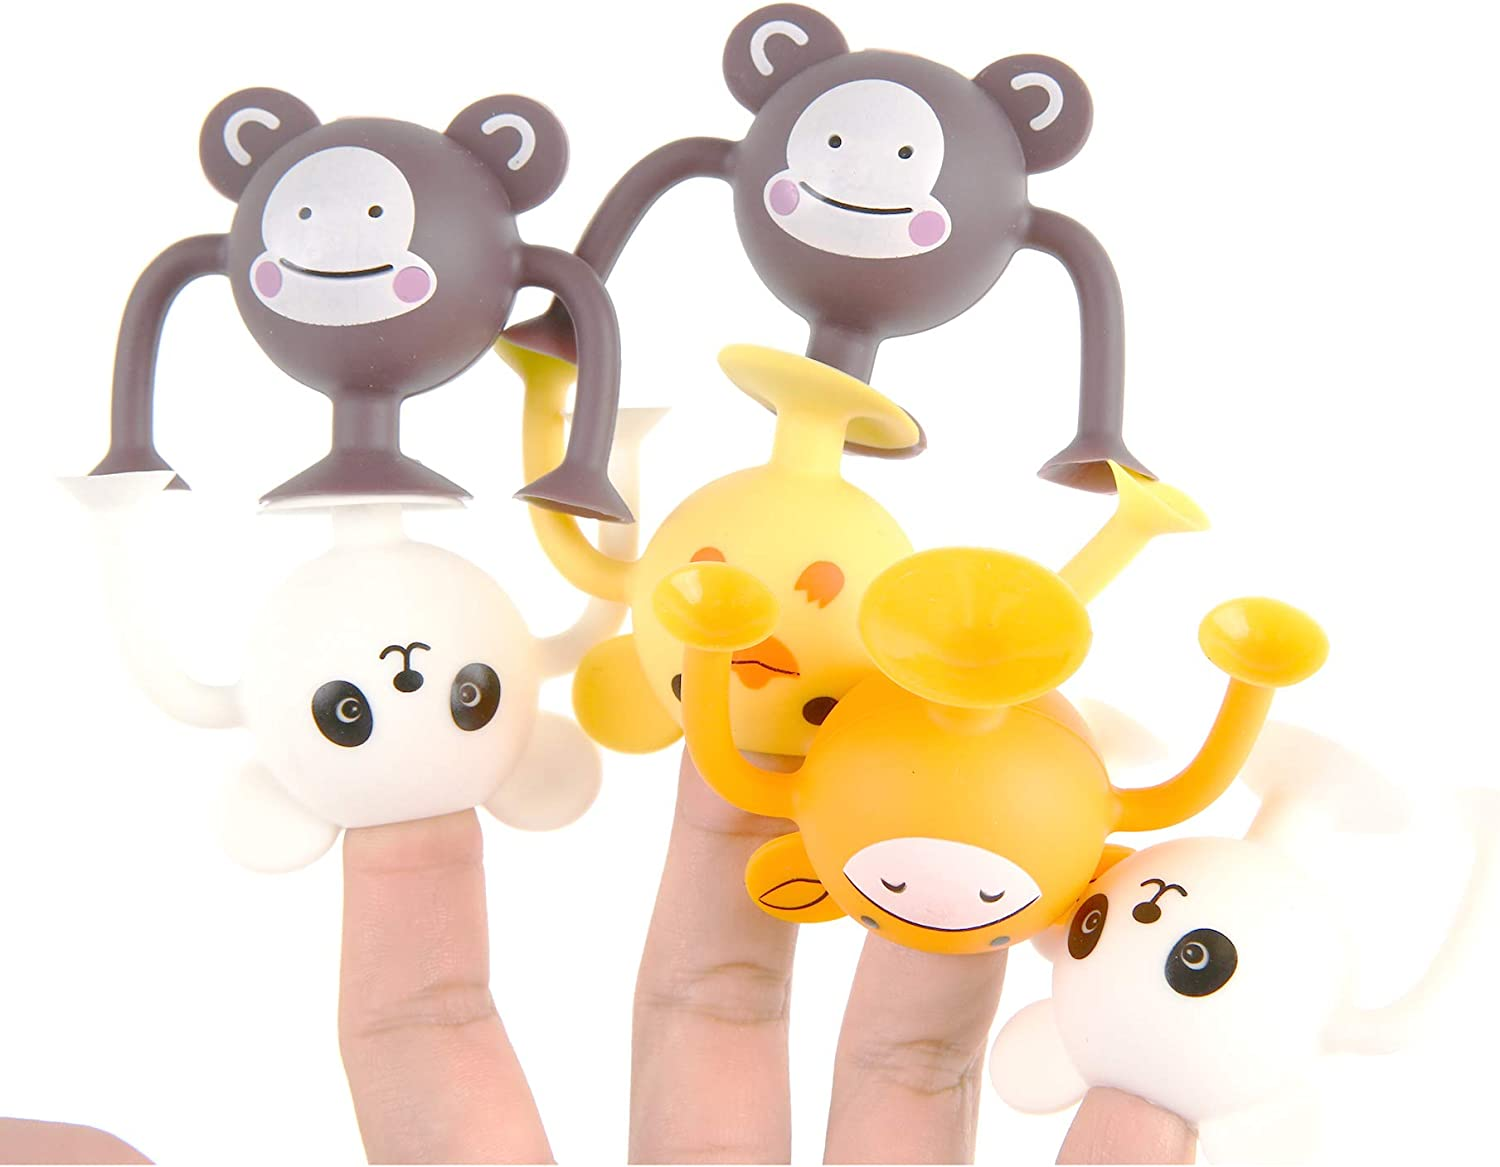 NeatoTek Cute Animal 30 Pack Suction Cup Building Toy Construction Set Compatible with Squigz Suction Building Toy Kit